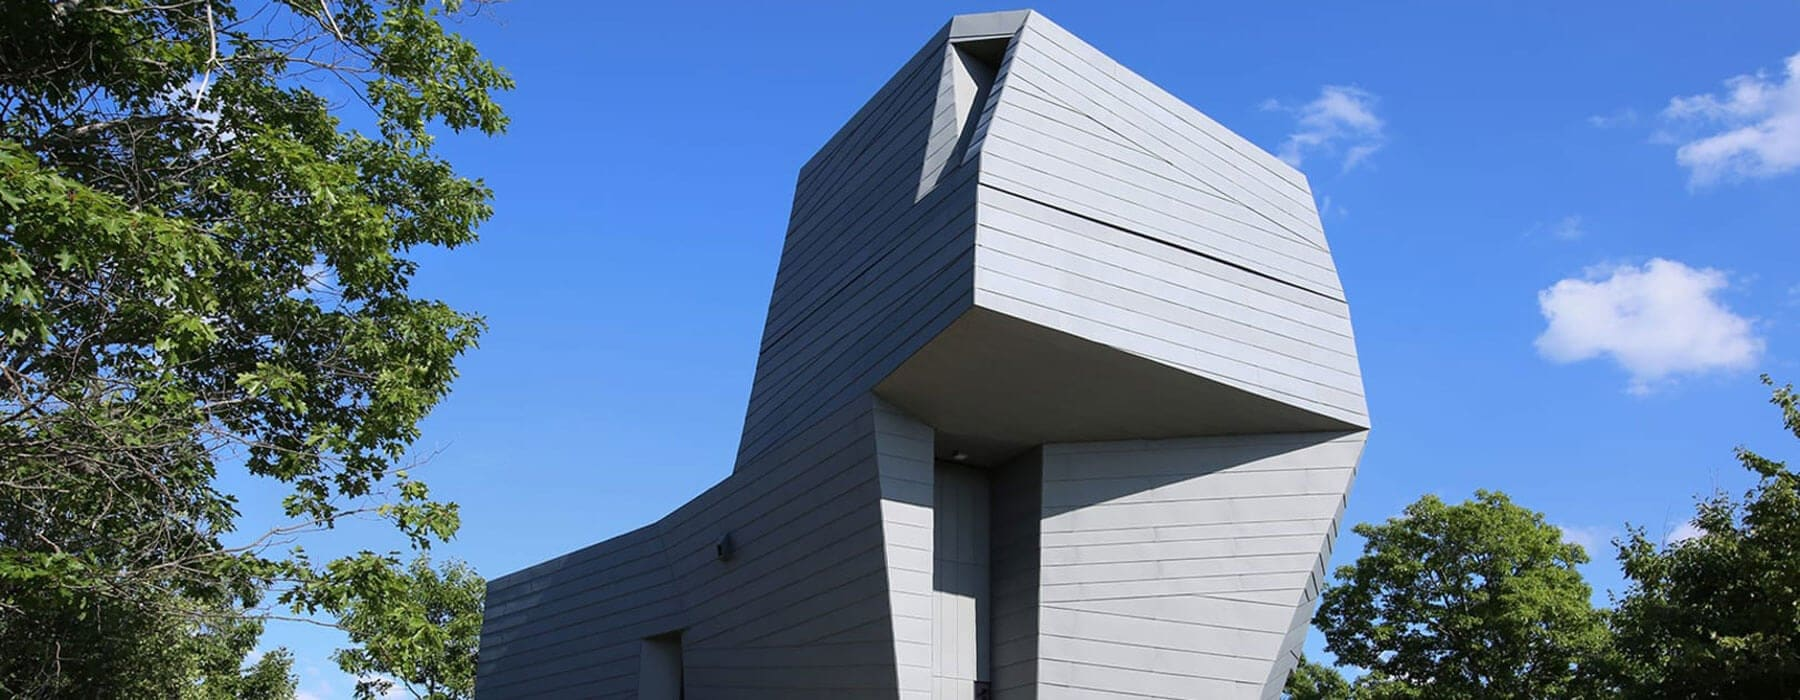 anmahian winton architects private astronomical gemma observatory fy 7